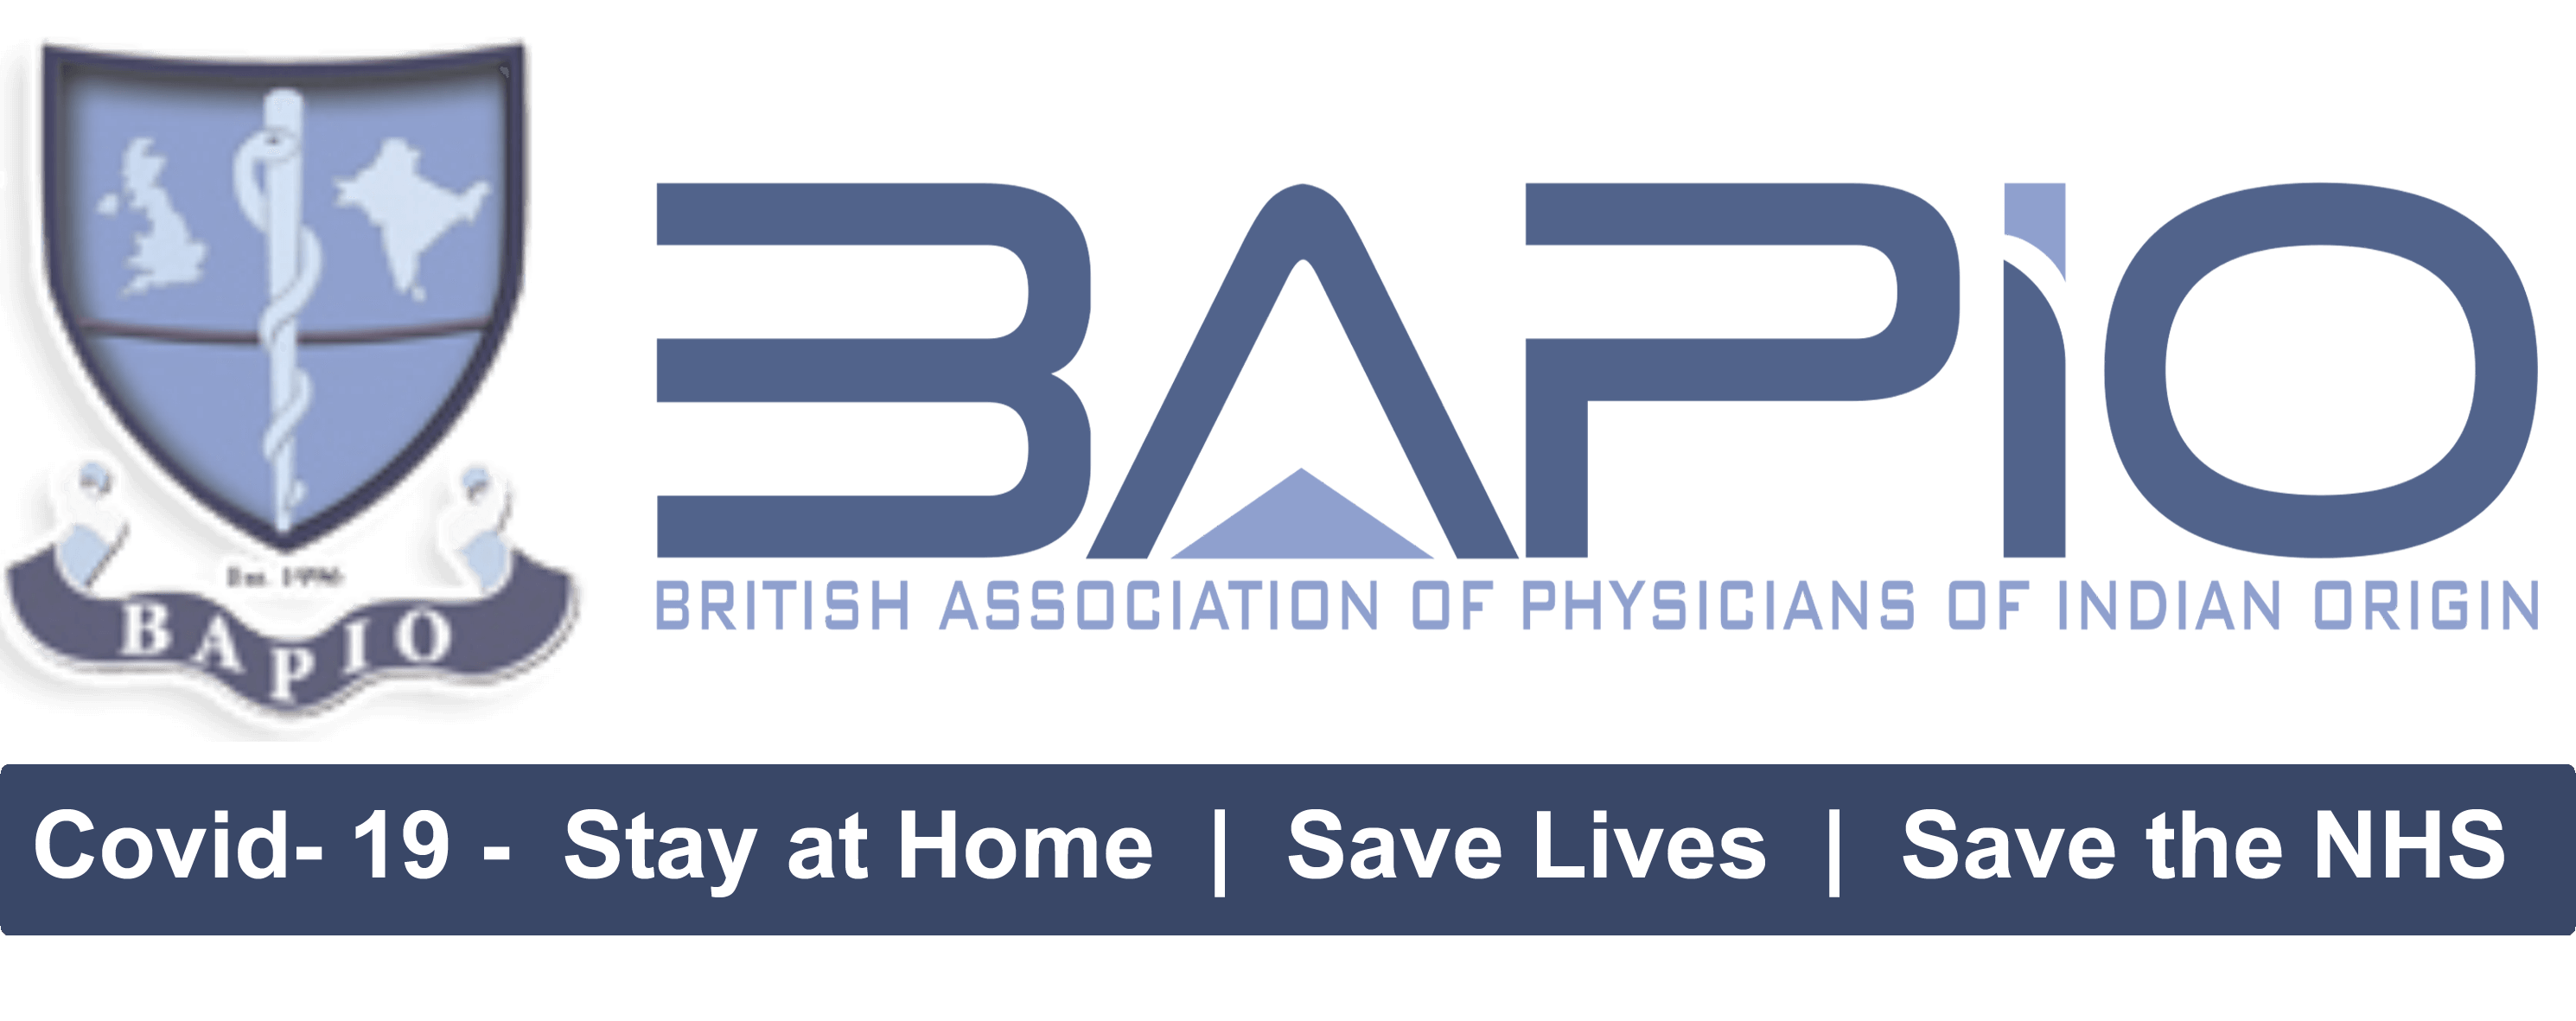 BAPIO | British Association of Physicians of Indian Origin